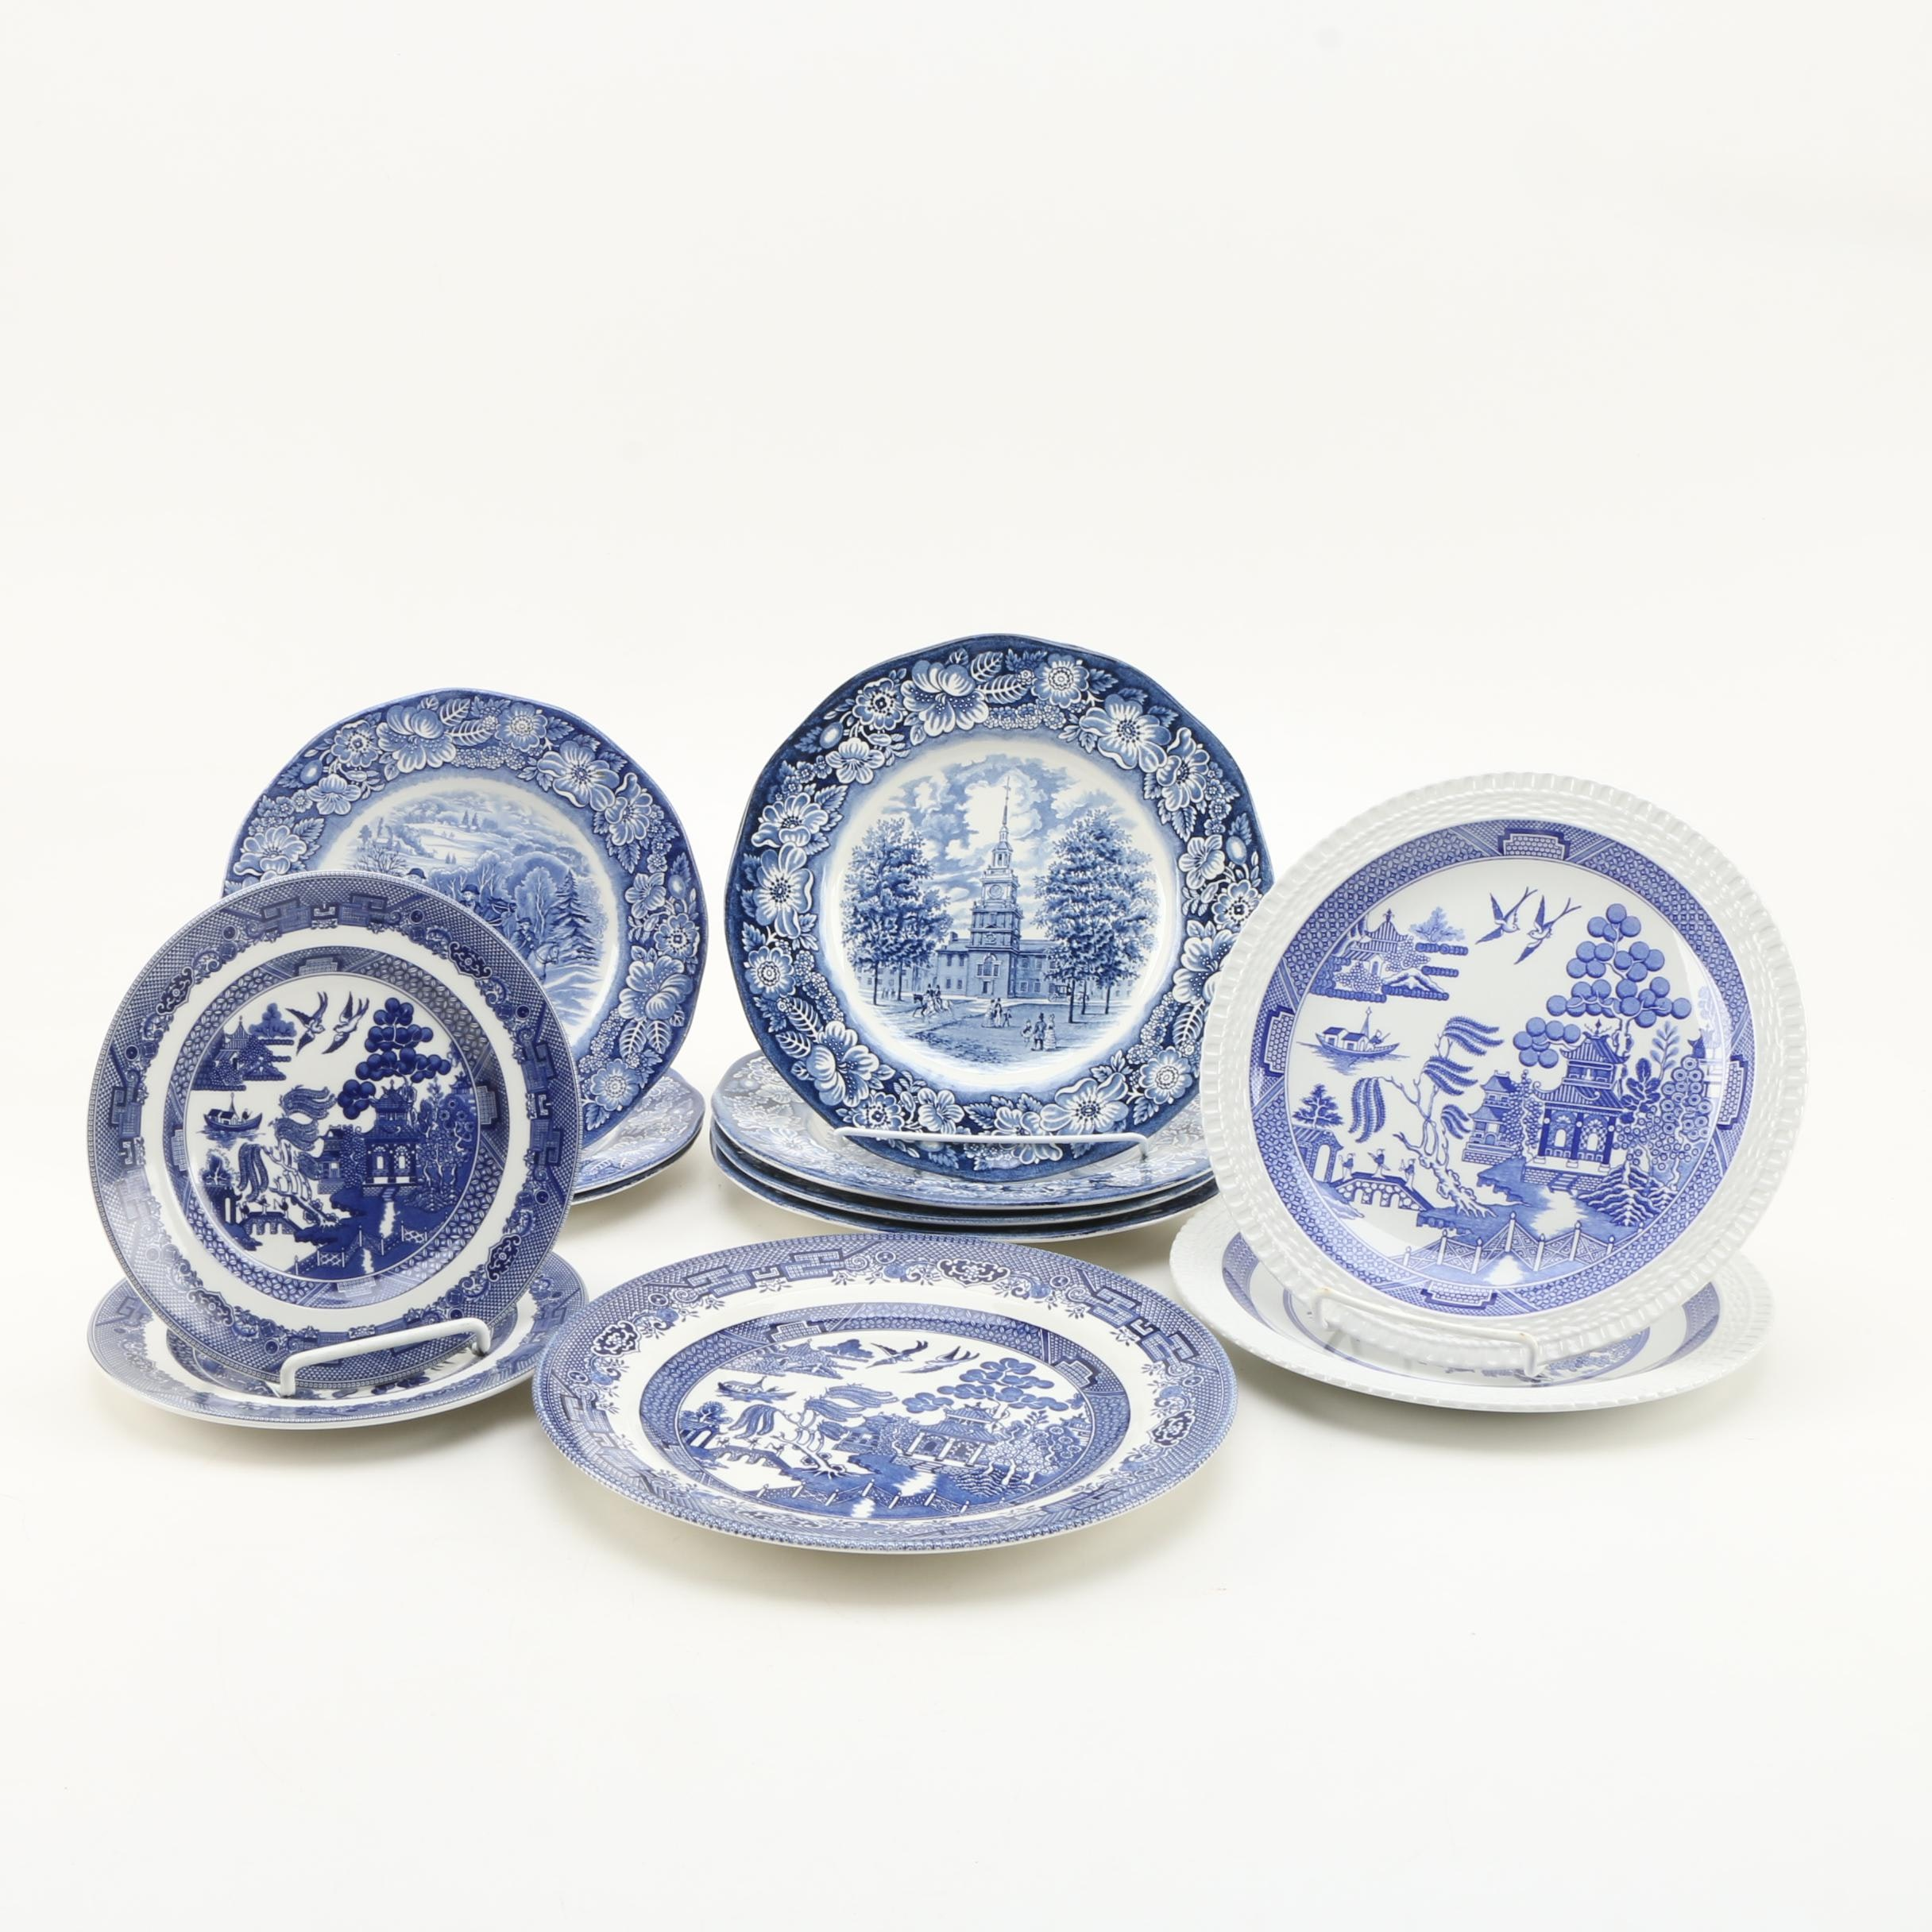 Cobalt on White Porcelain and Ironstone Plates, Including Blue Willow